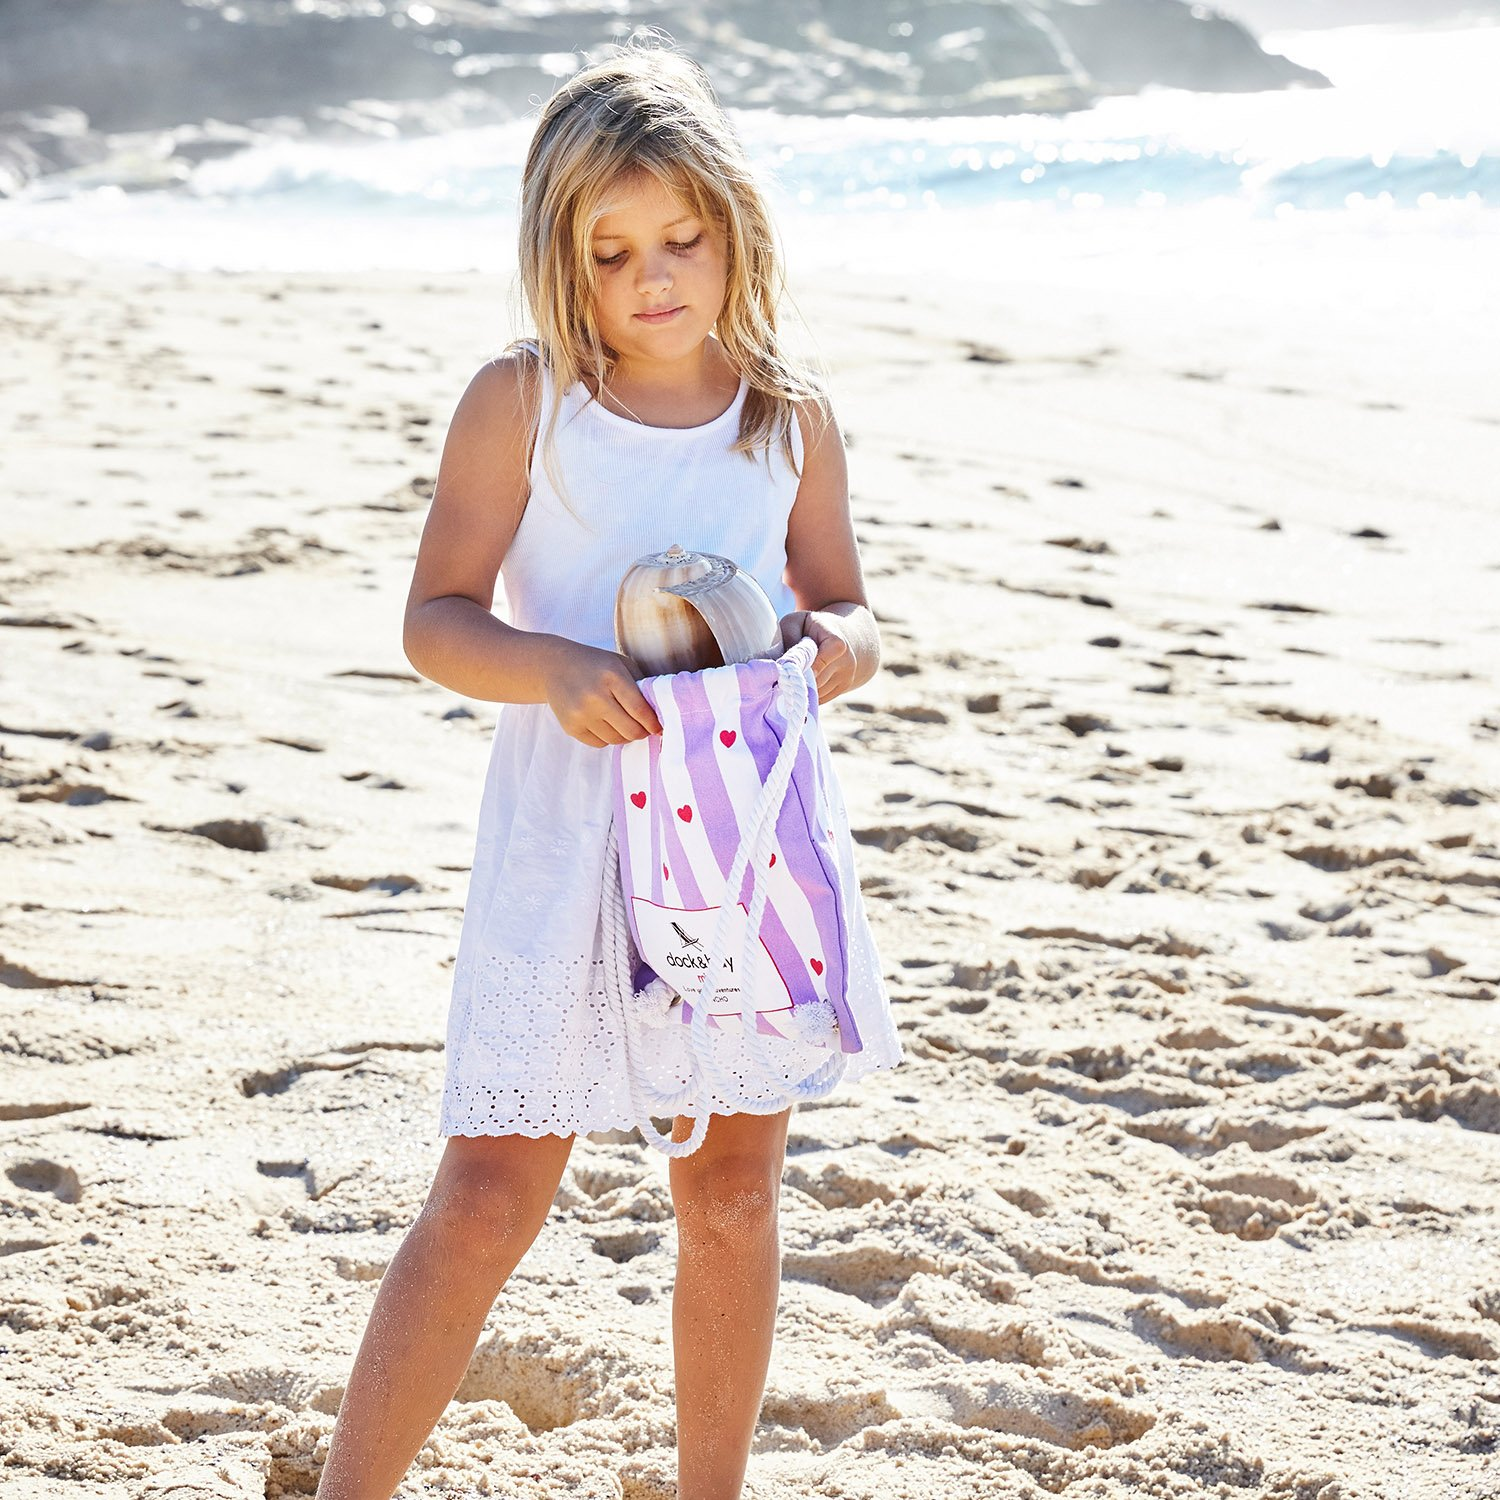 packs into its own drawstring beach bag Microfibre Kids Poncho with hood 28 long Compact /& Lightweight Beach /& Pool Suits ages 3-7 - Mini collection Quick Dry Hooded Towels for Swim